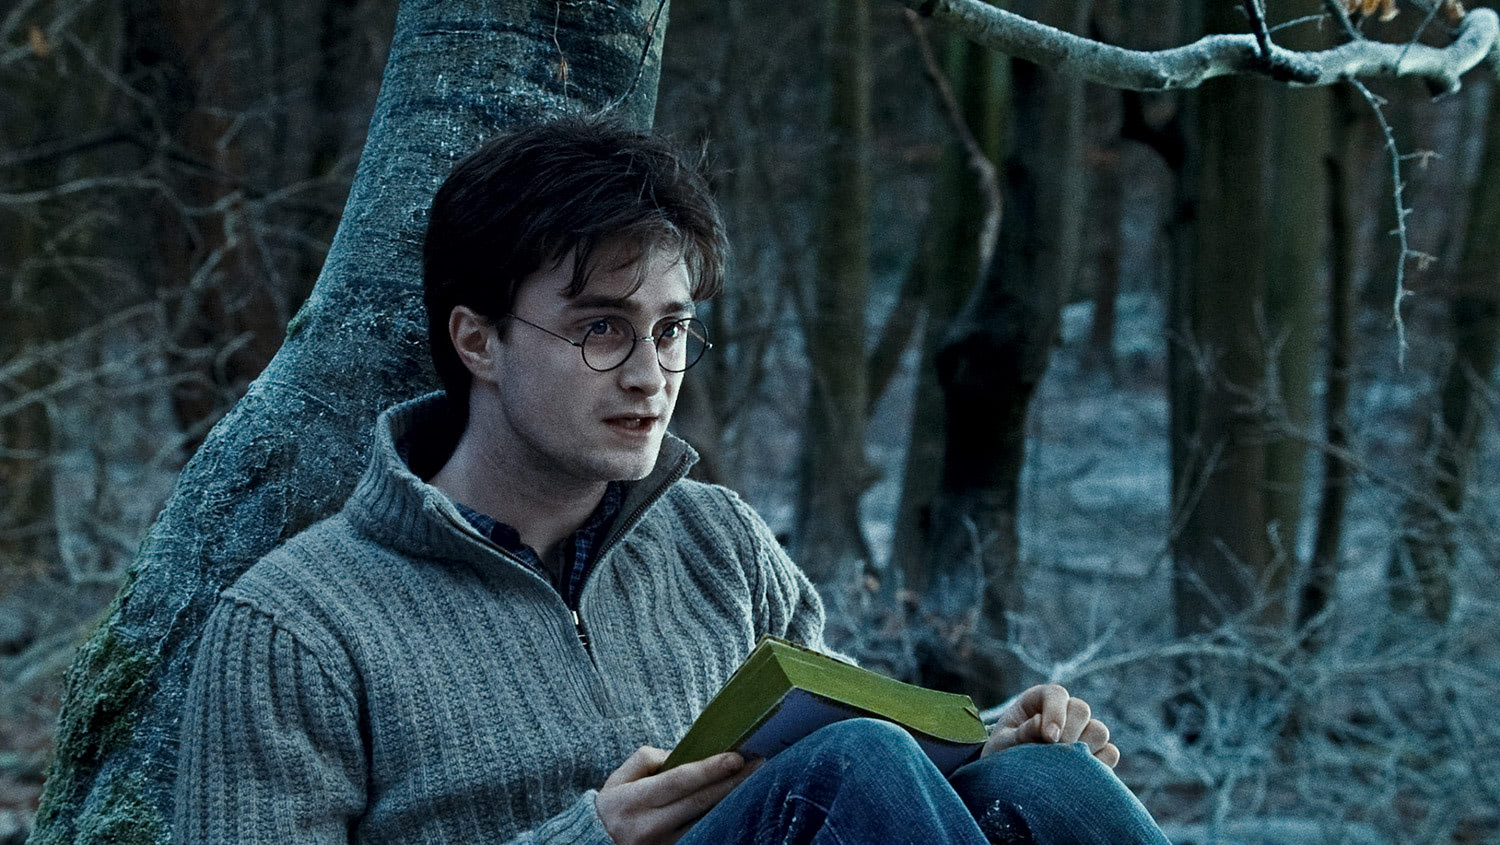 Harry reads Dumbledore's biography